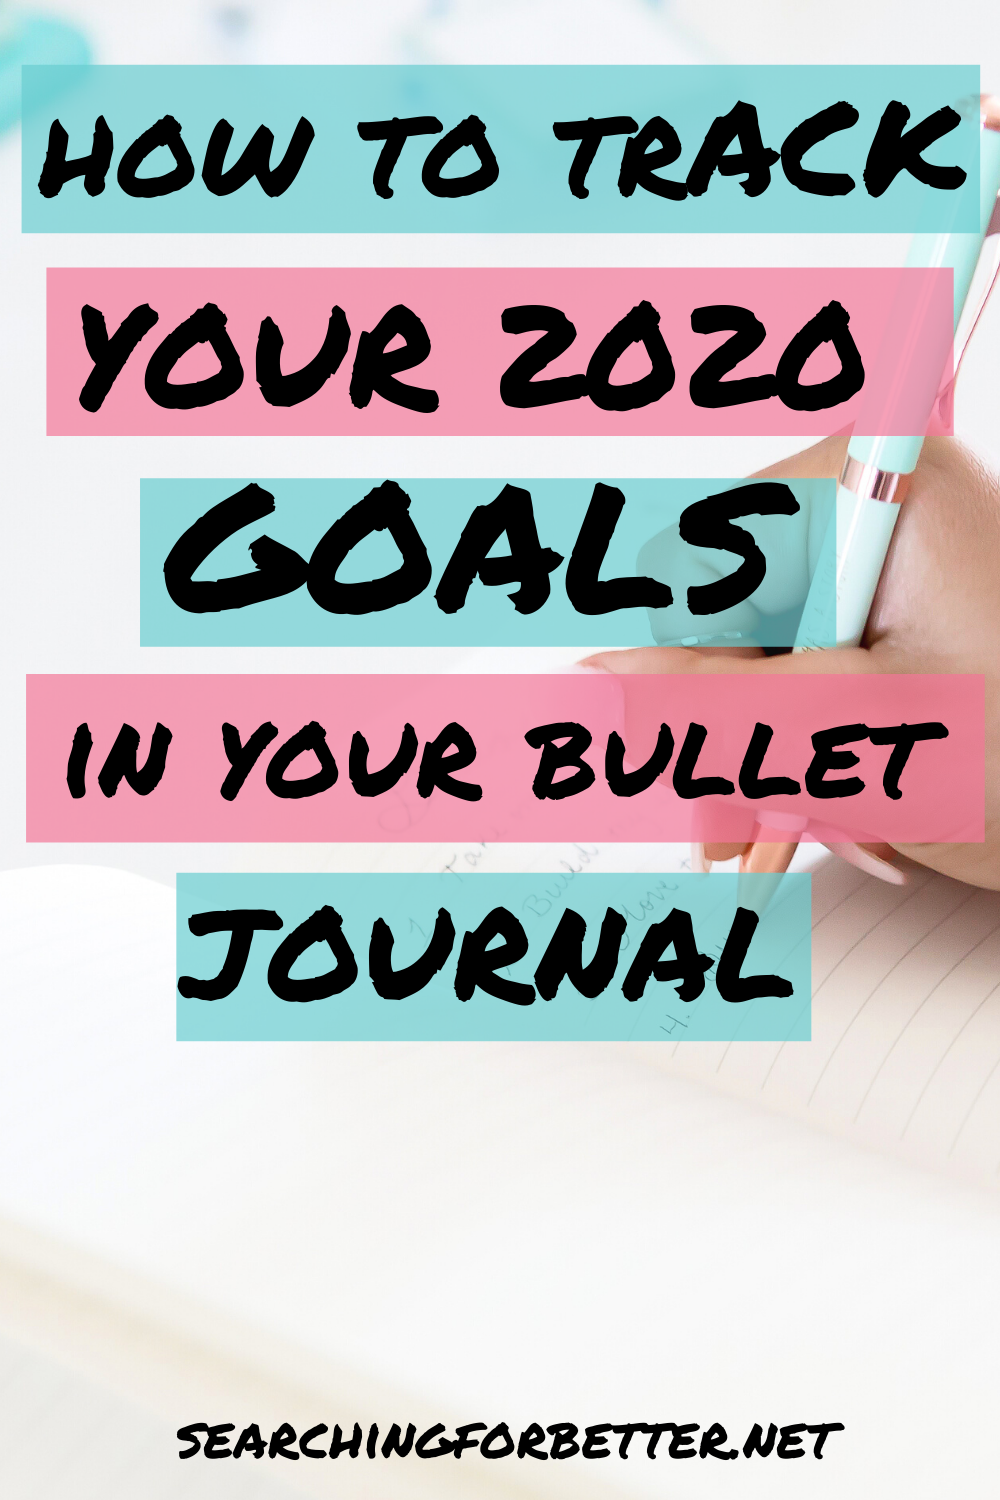 10 Bullet Journal Layouts For Your 2020 Goals. These ideas are great to help you track your yearly, monthly, weekly and daily life goals. They give you great ideas on how to use your bullet journal for goal setting. The layouts are easy to use and will help you create your best life in 2020!